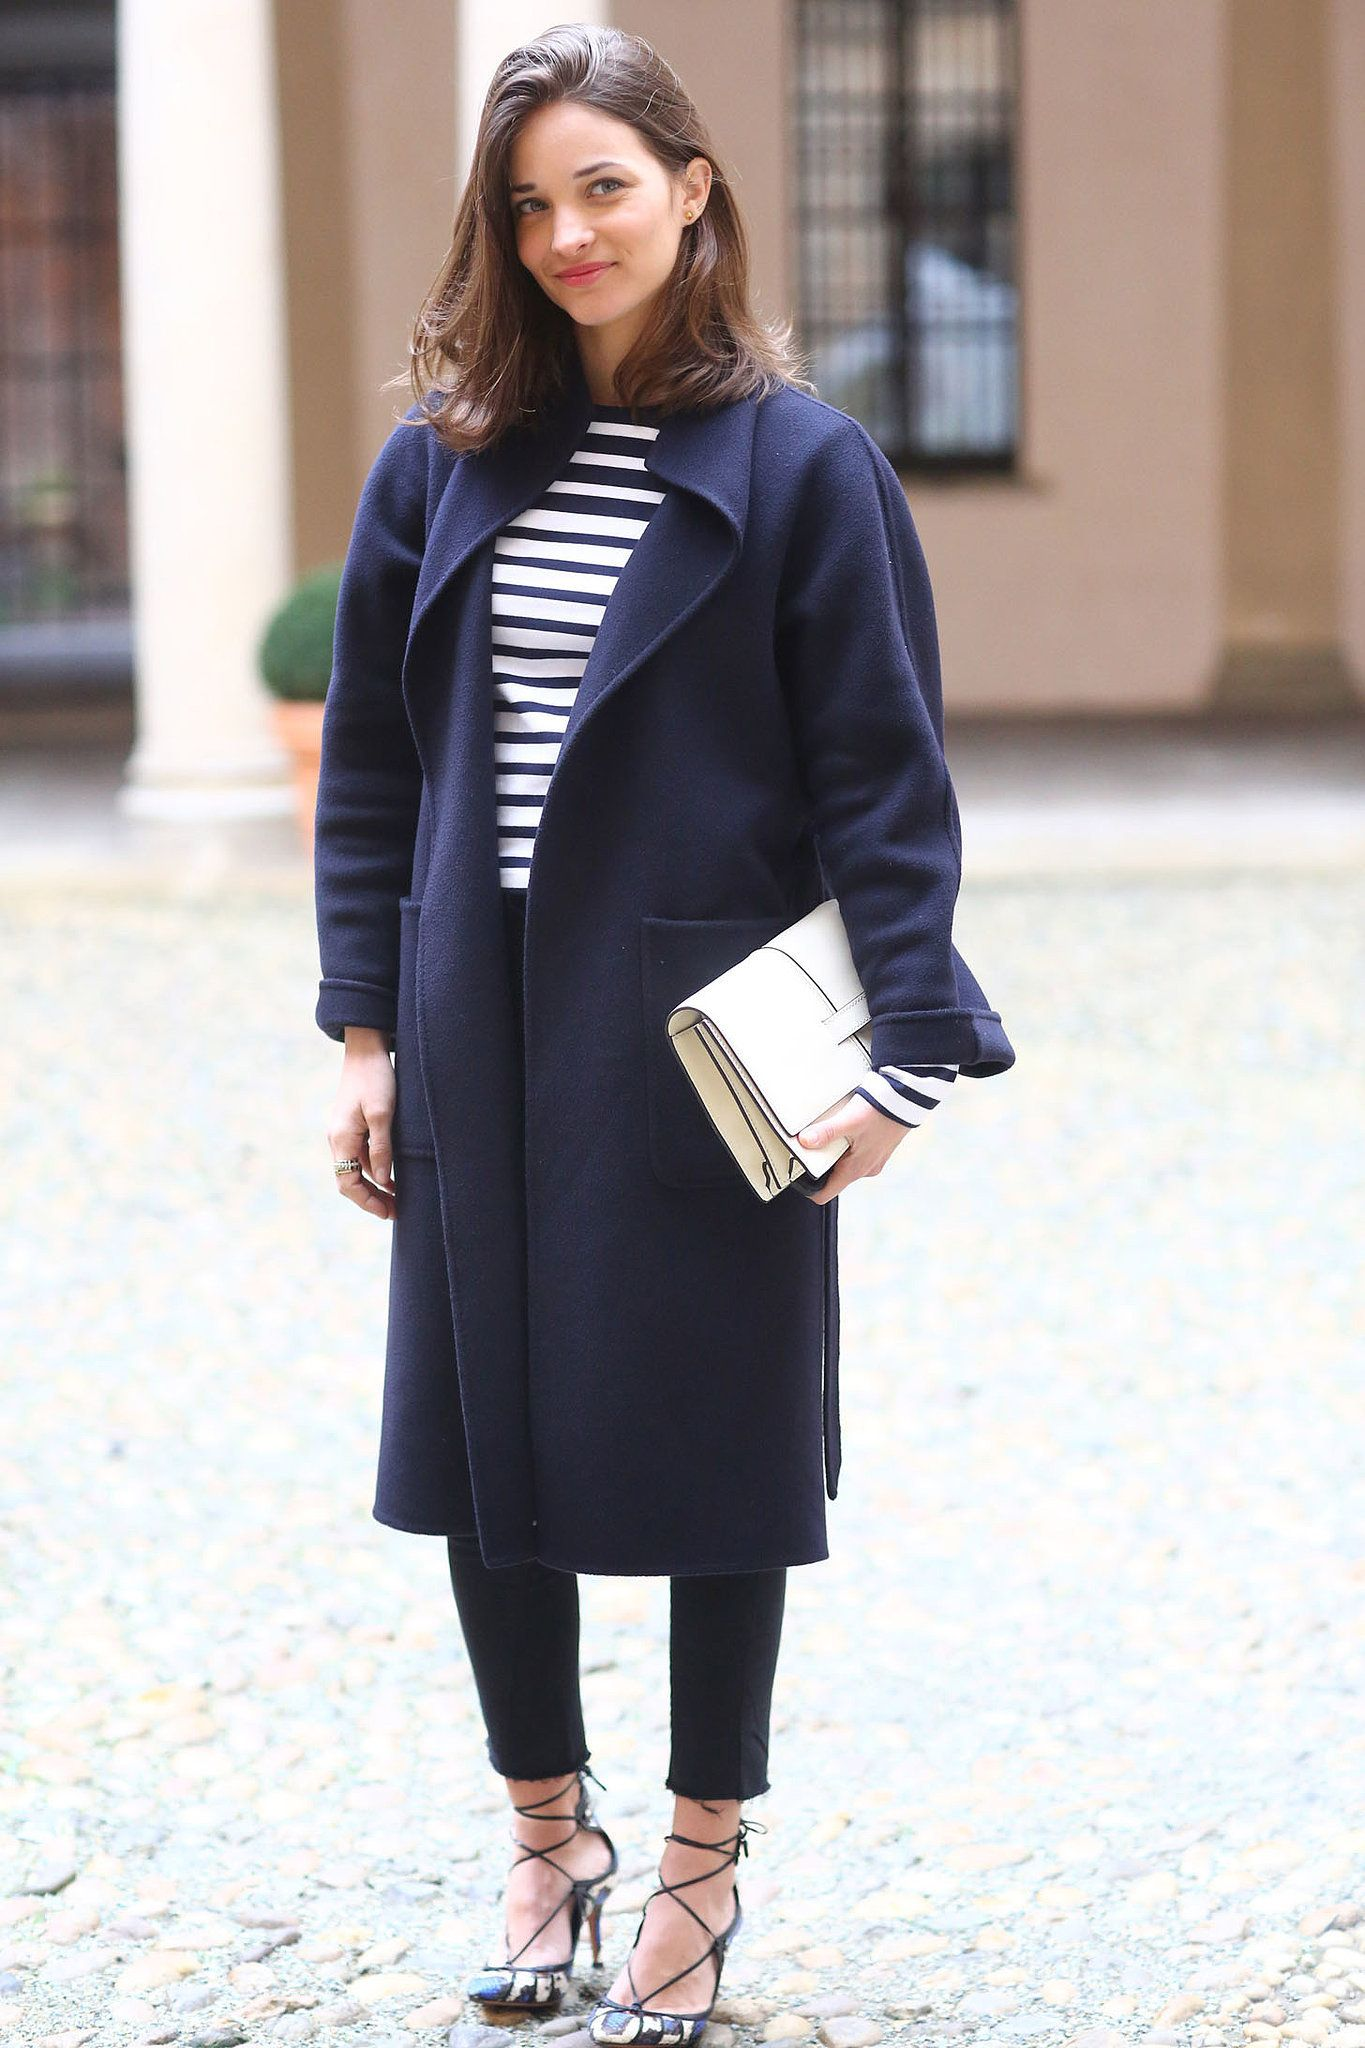 Maria Duenas Jacobs in classic stripes #MFW #Streetstyle